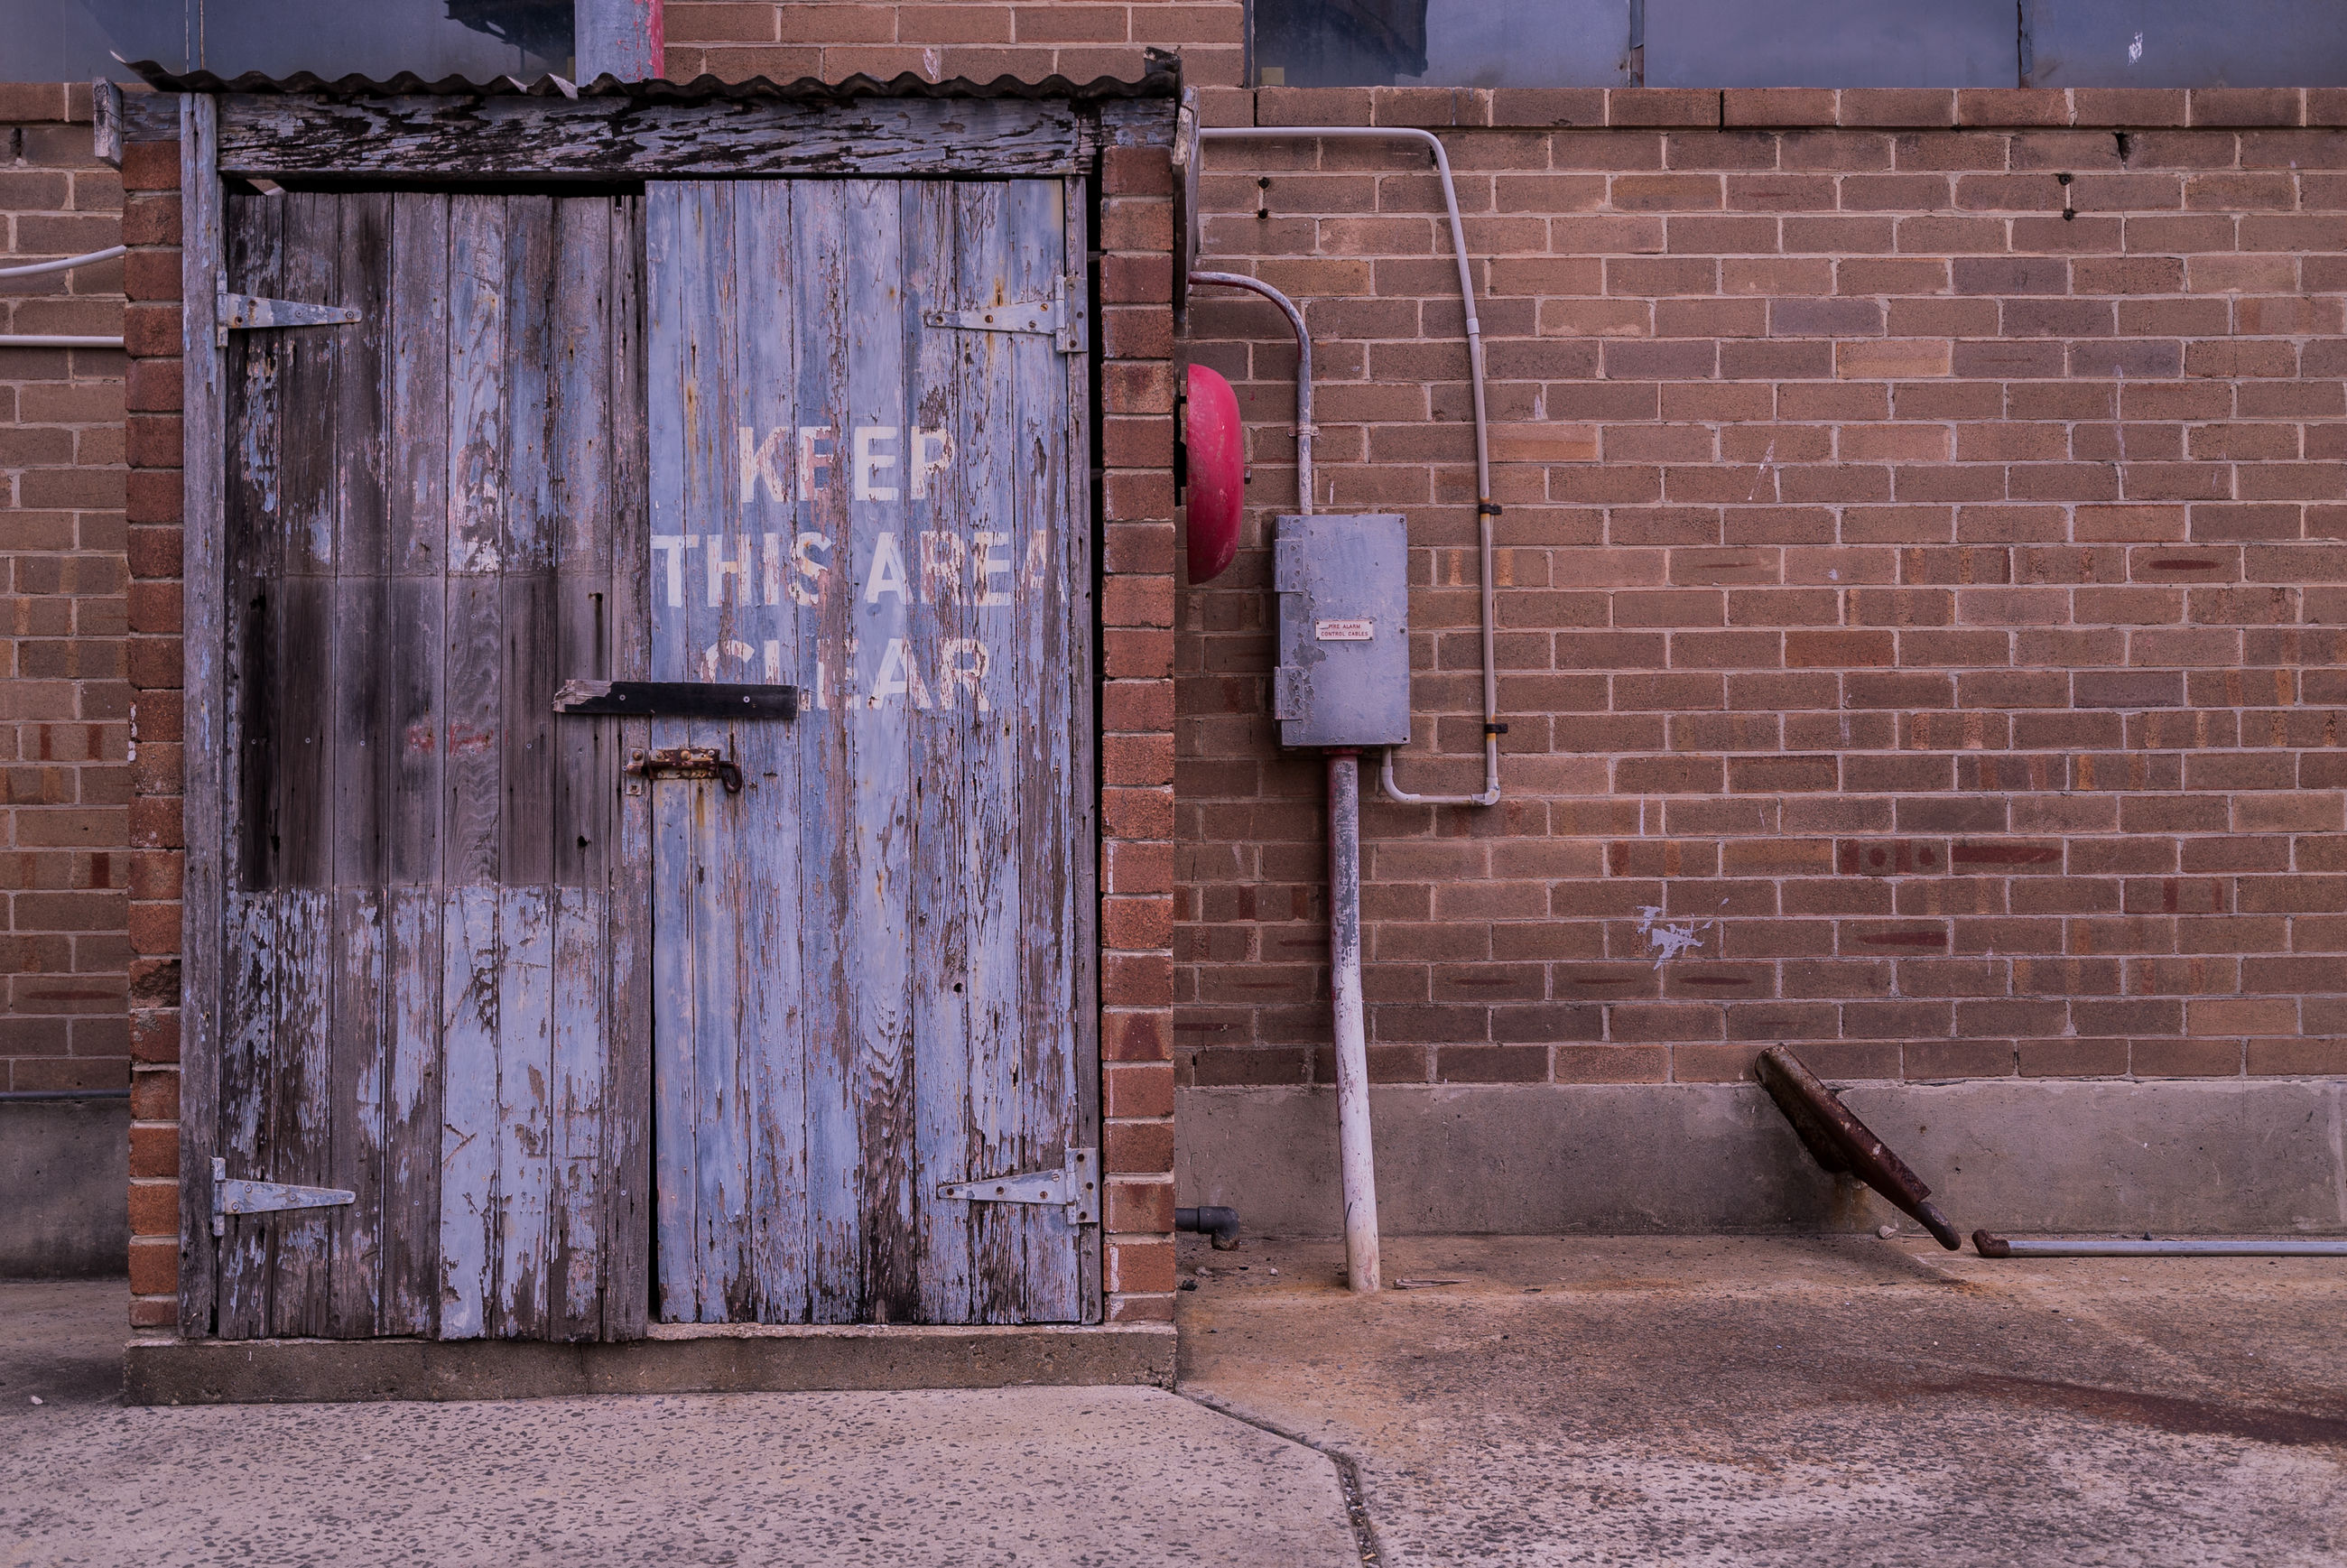 Closed entrance against brick wall